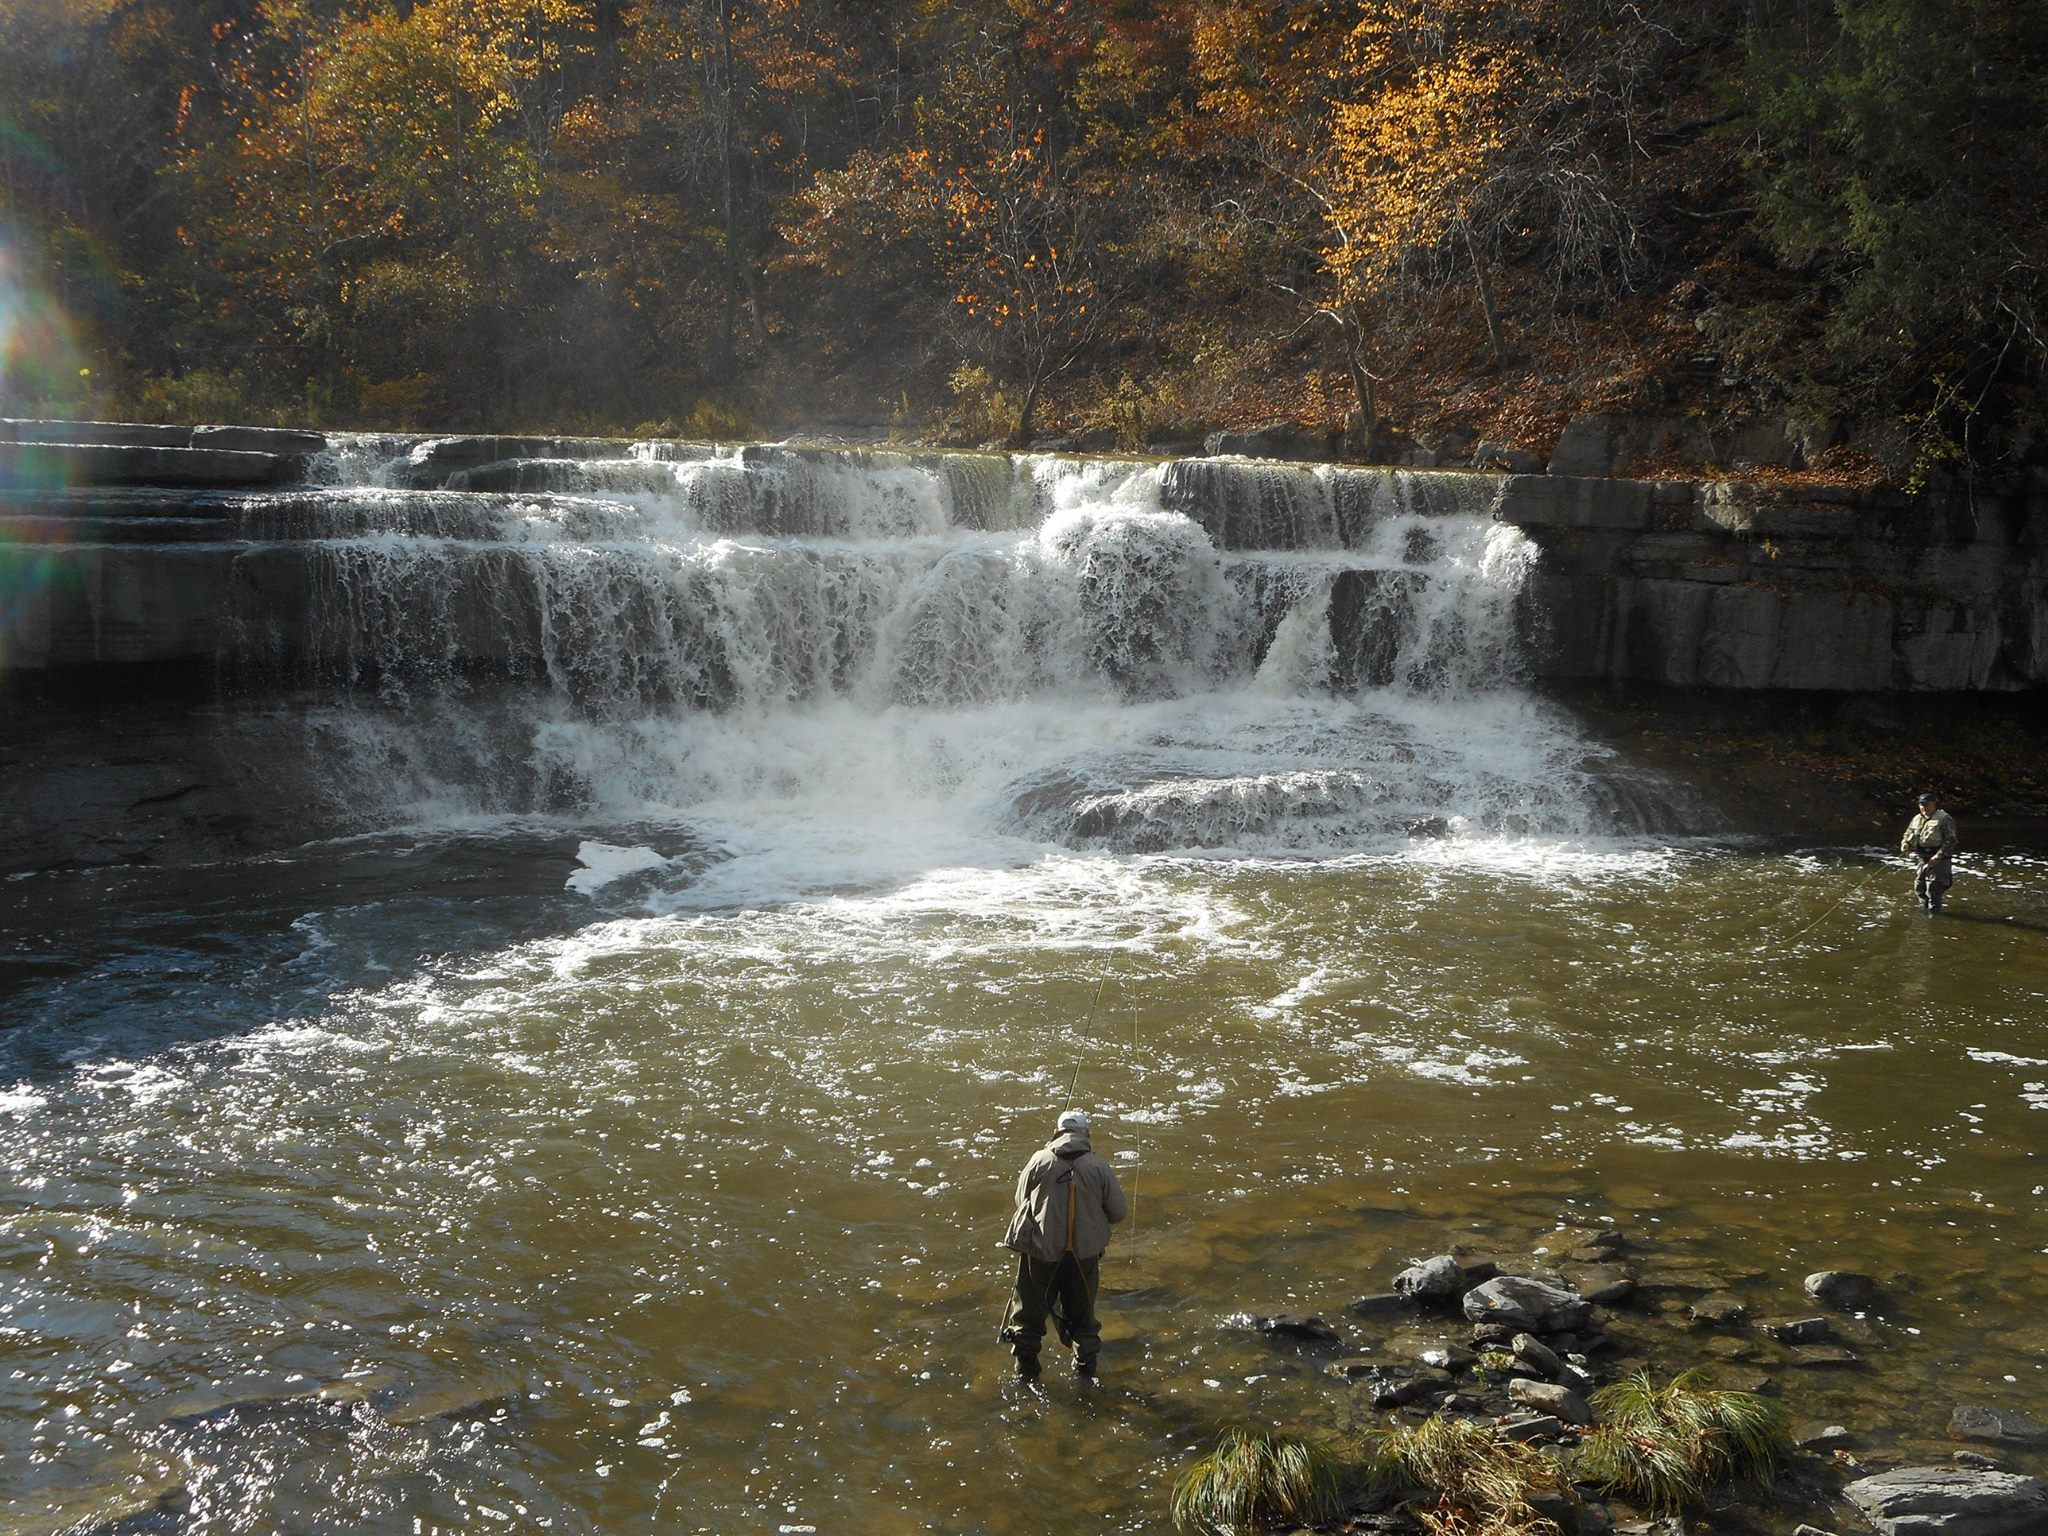 the day's catch... just below the falls a fisherman.jpg